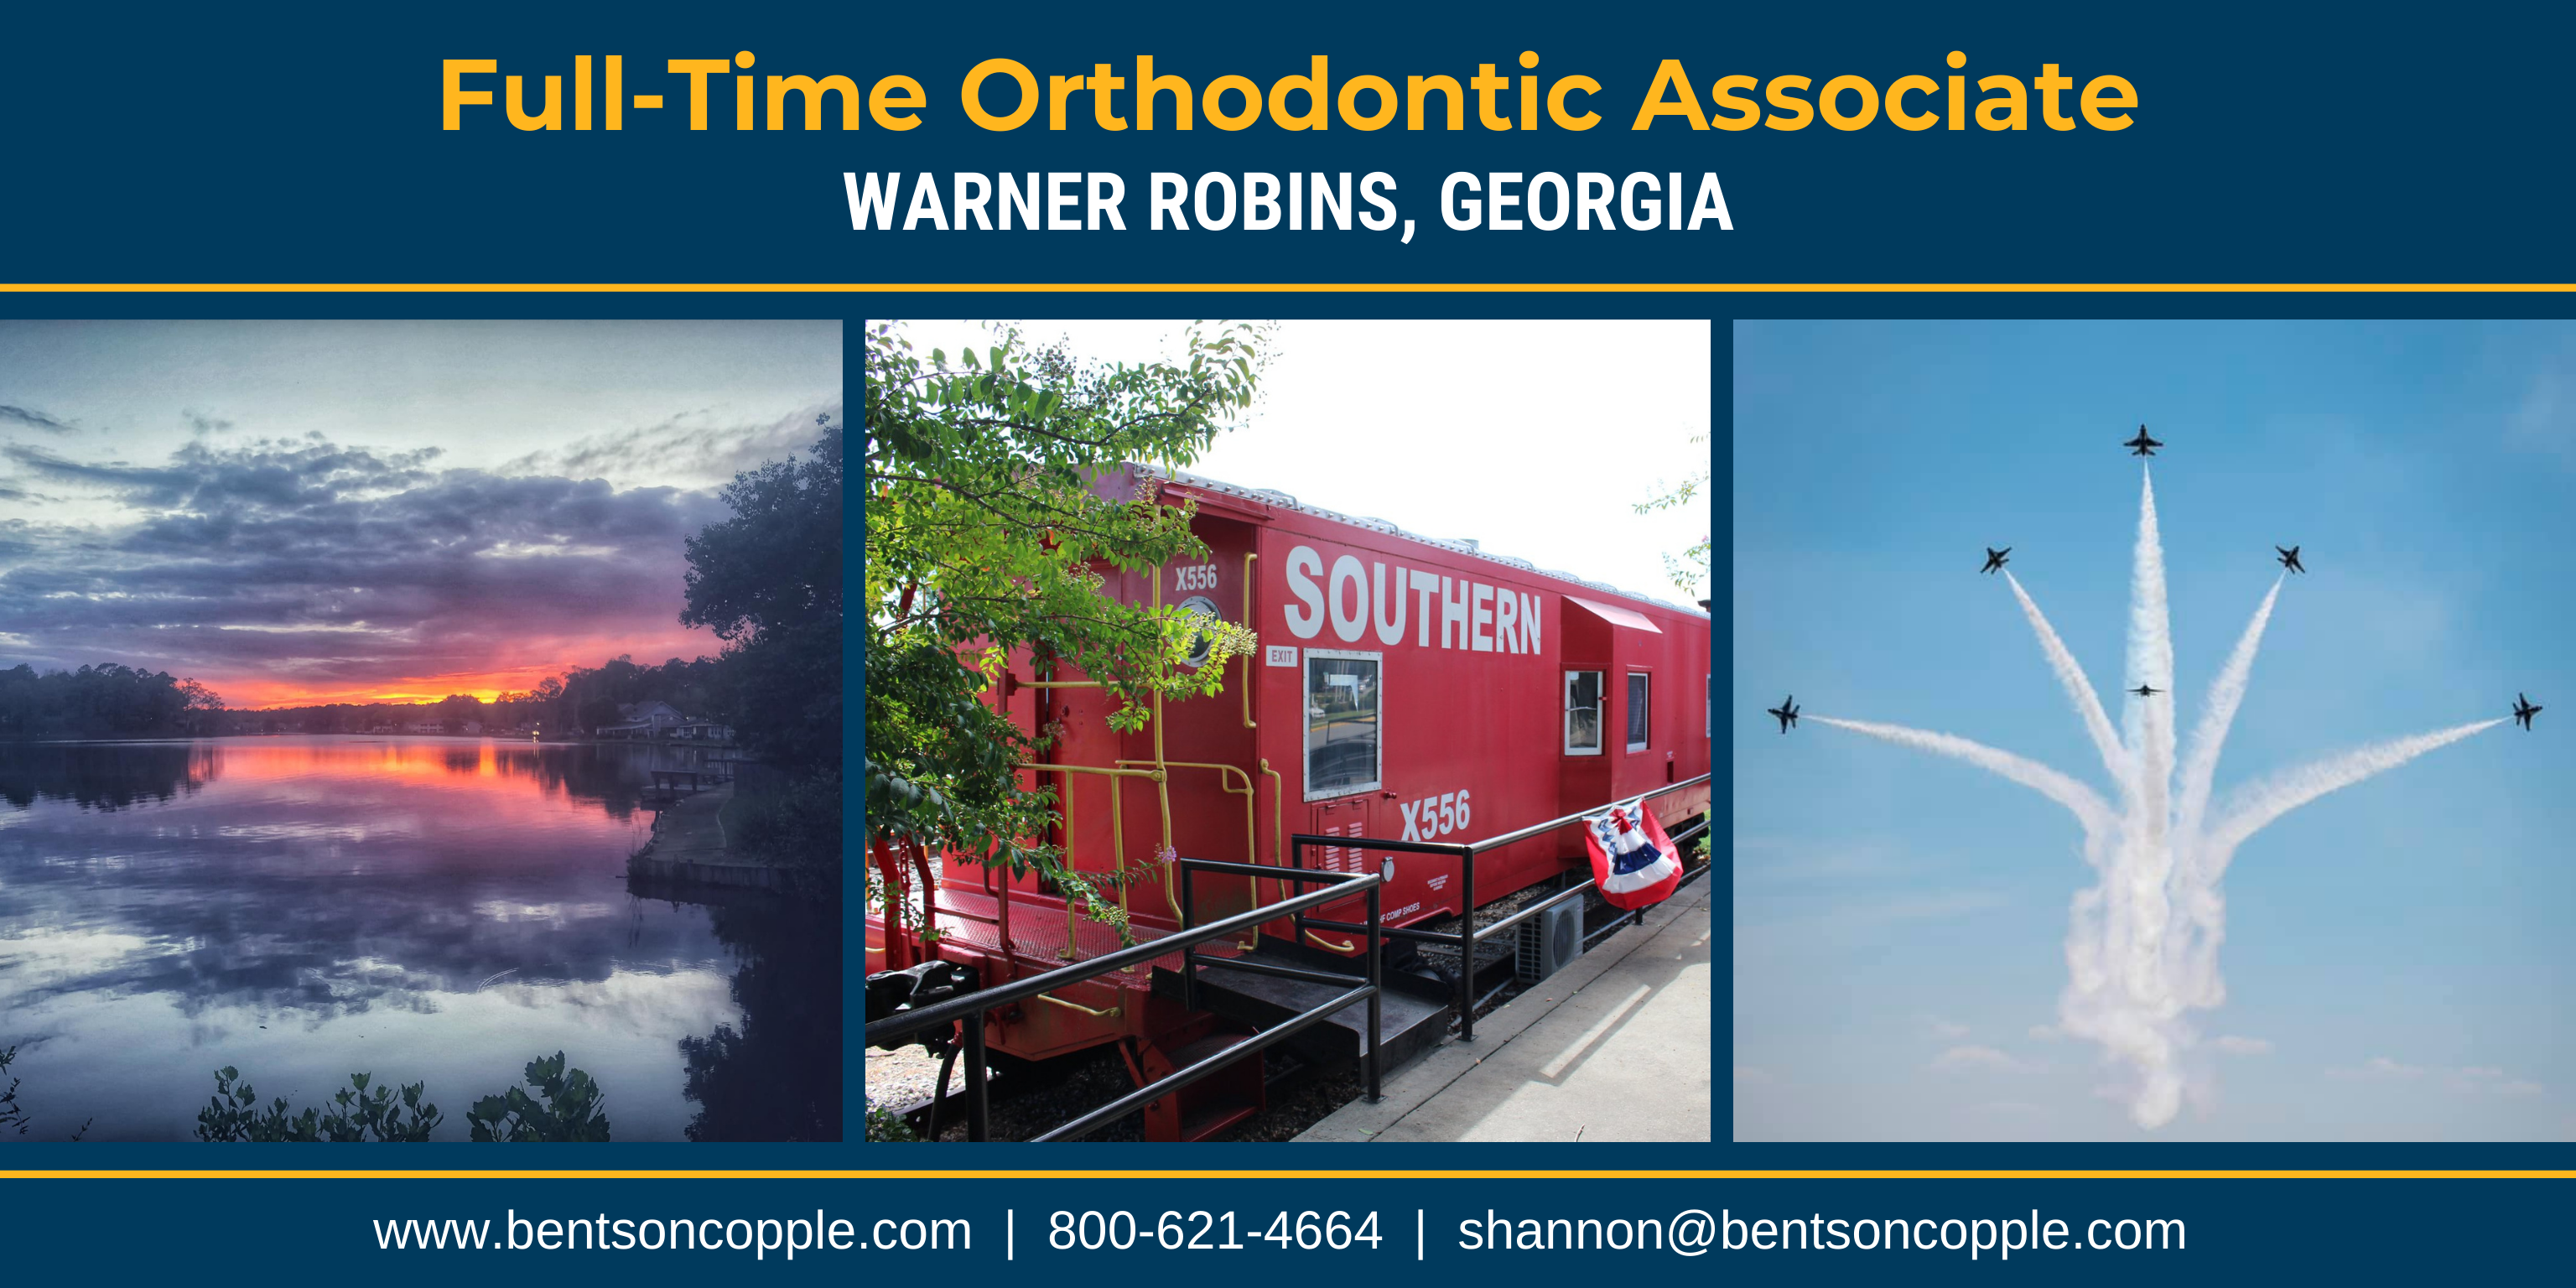 Full-Time Orthodontic Associate - Warner Robins, GA